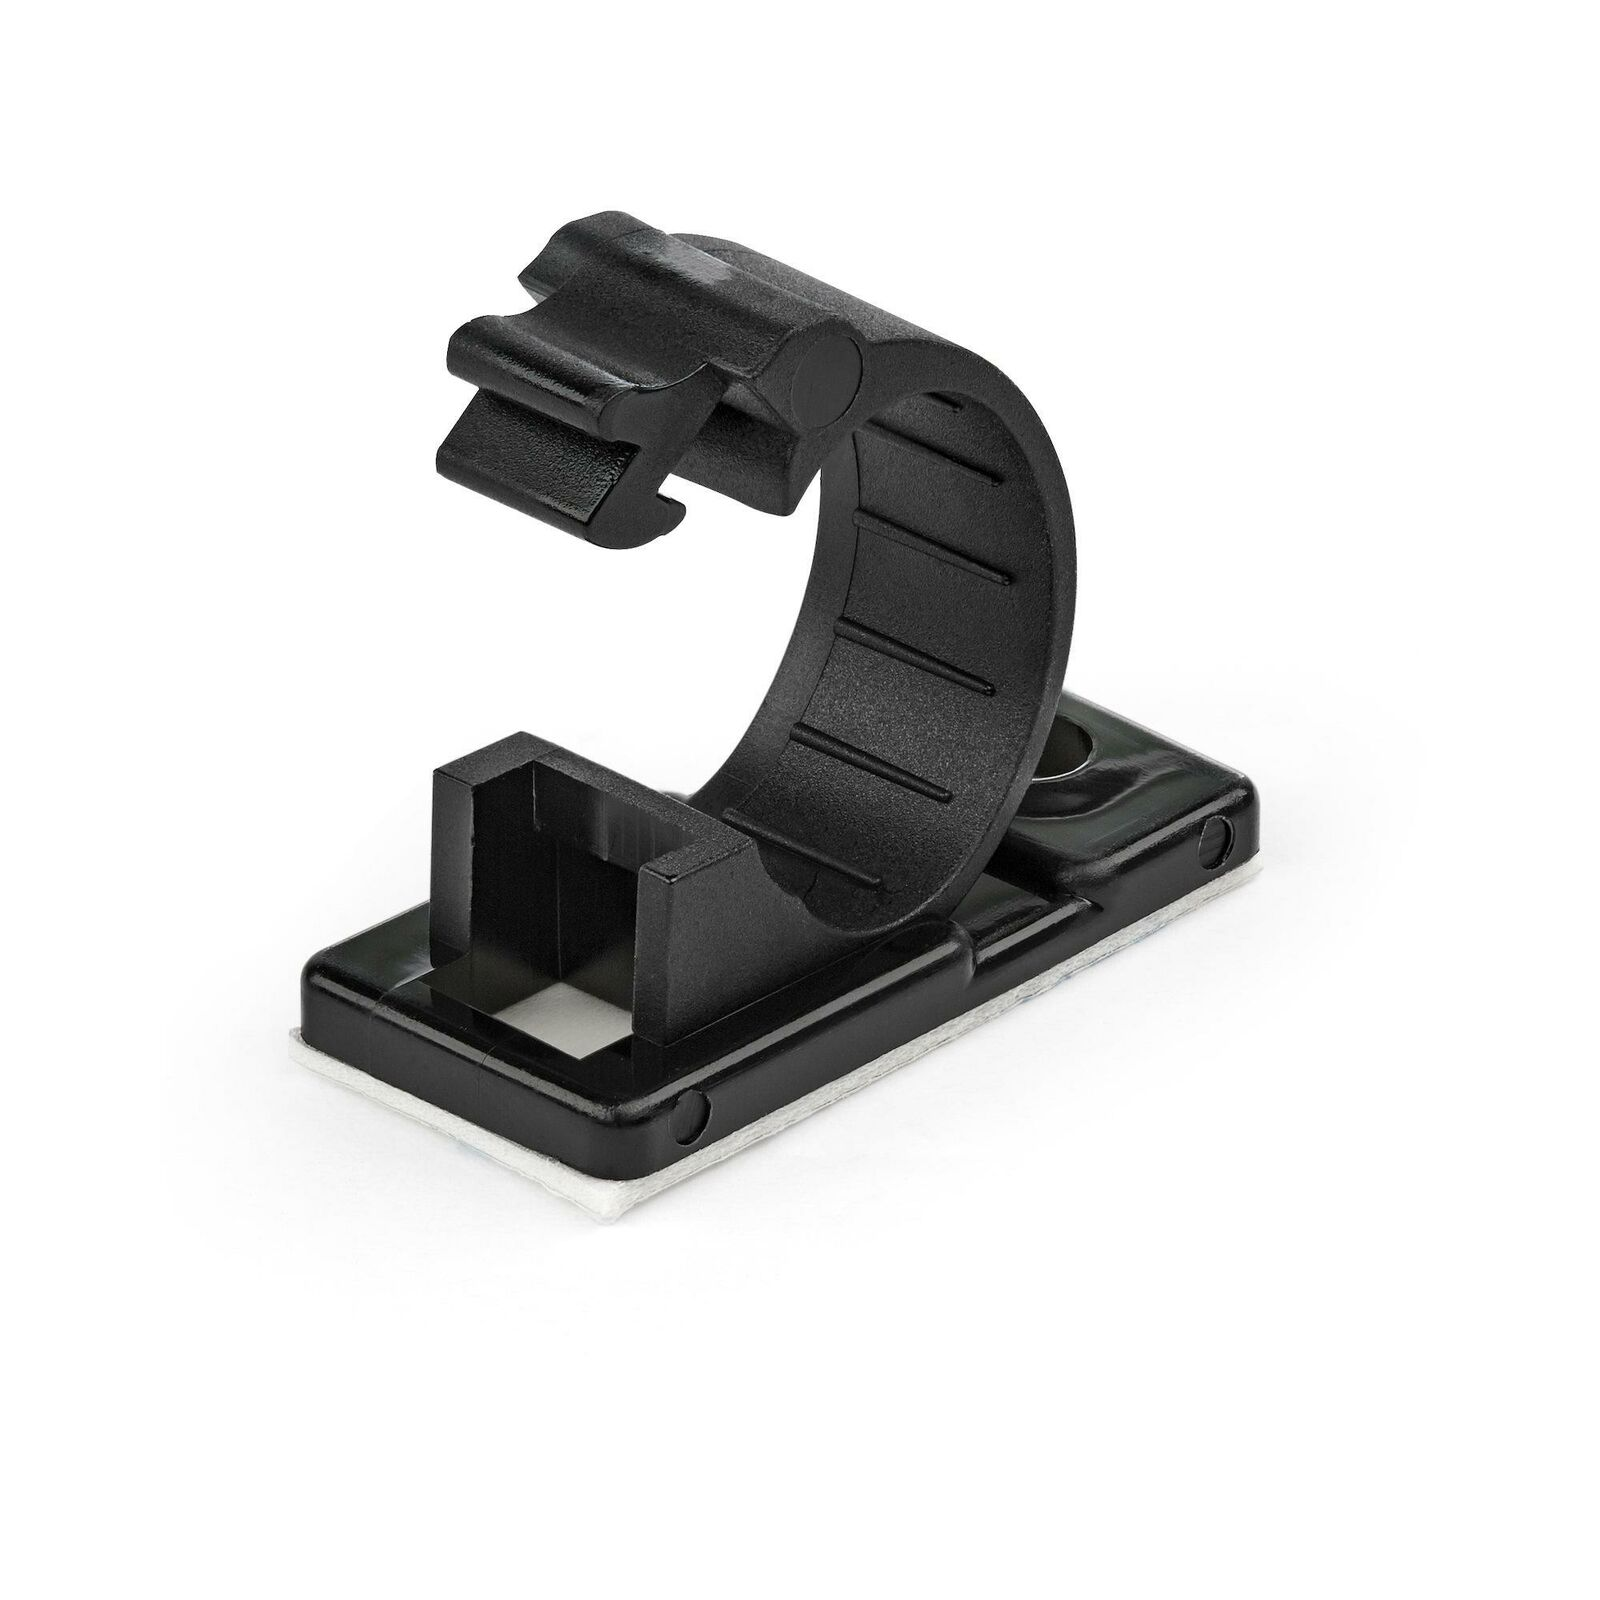 StarTech.com 100 Adhesive Cable Management Clips Black - Network/Ethernet/Off...